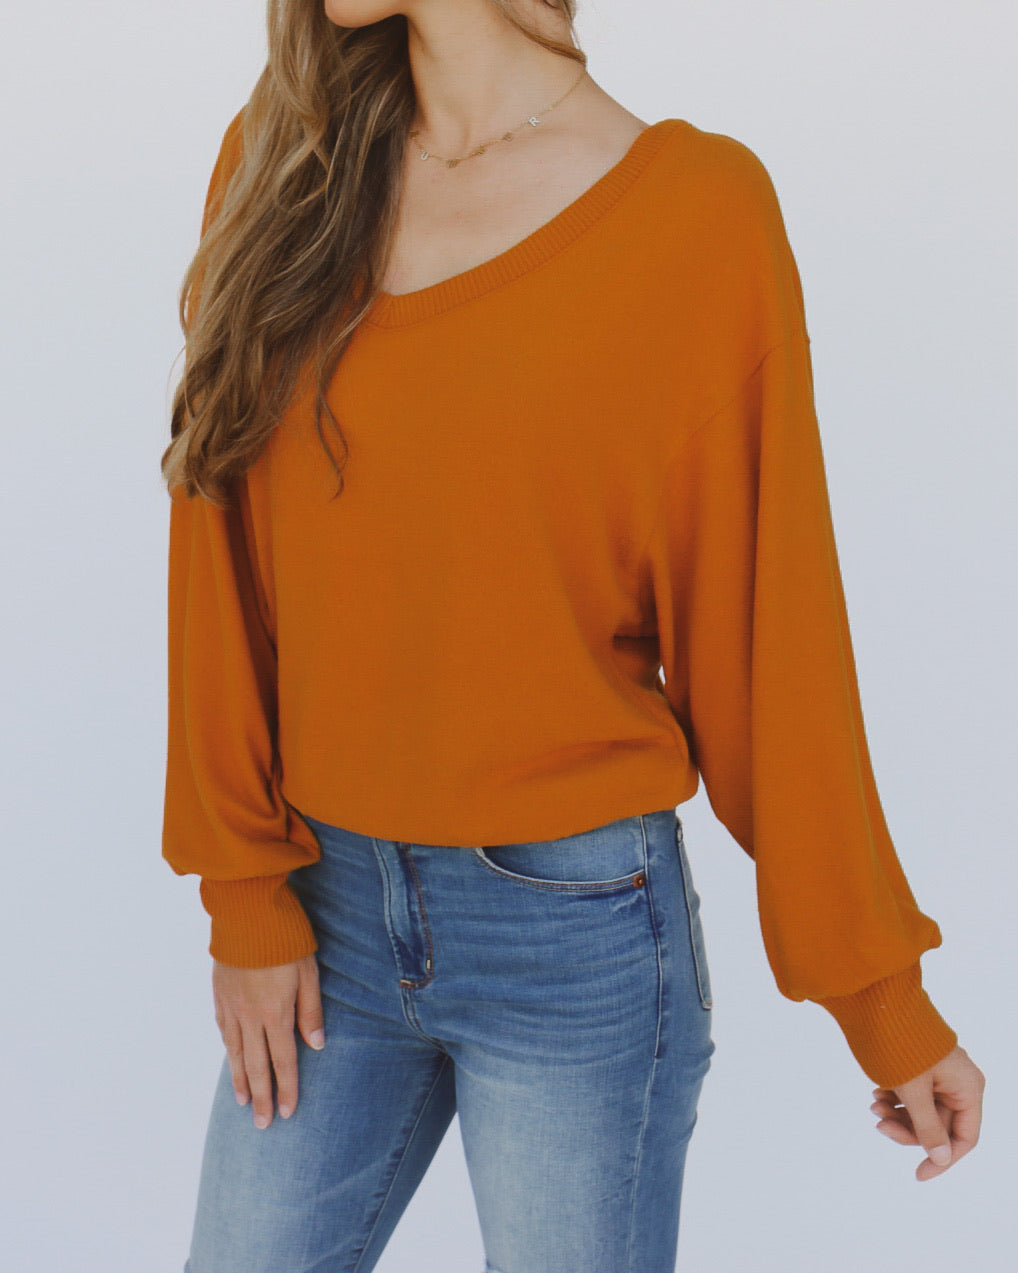 Harvest Sweater